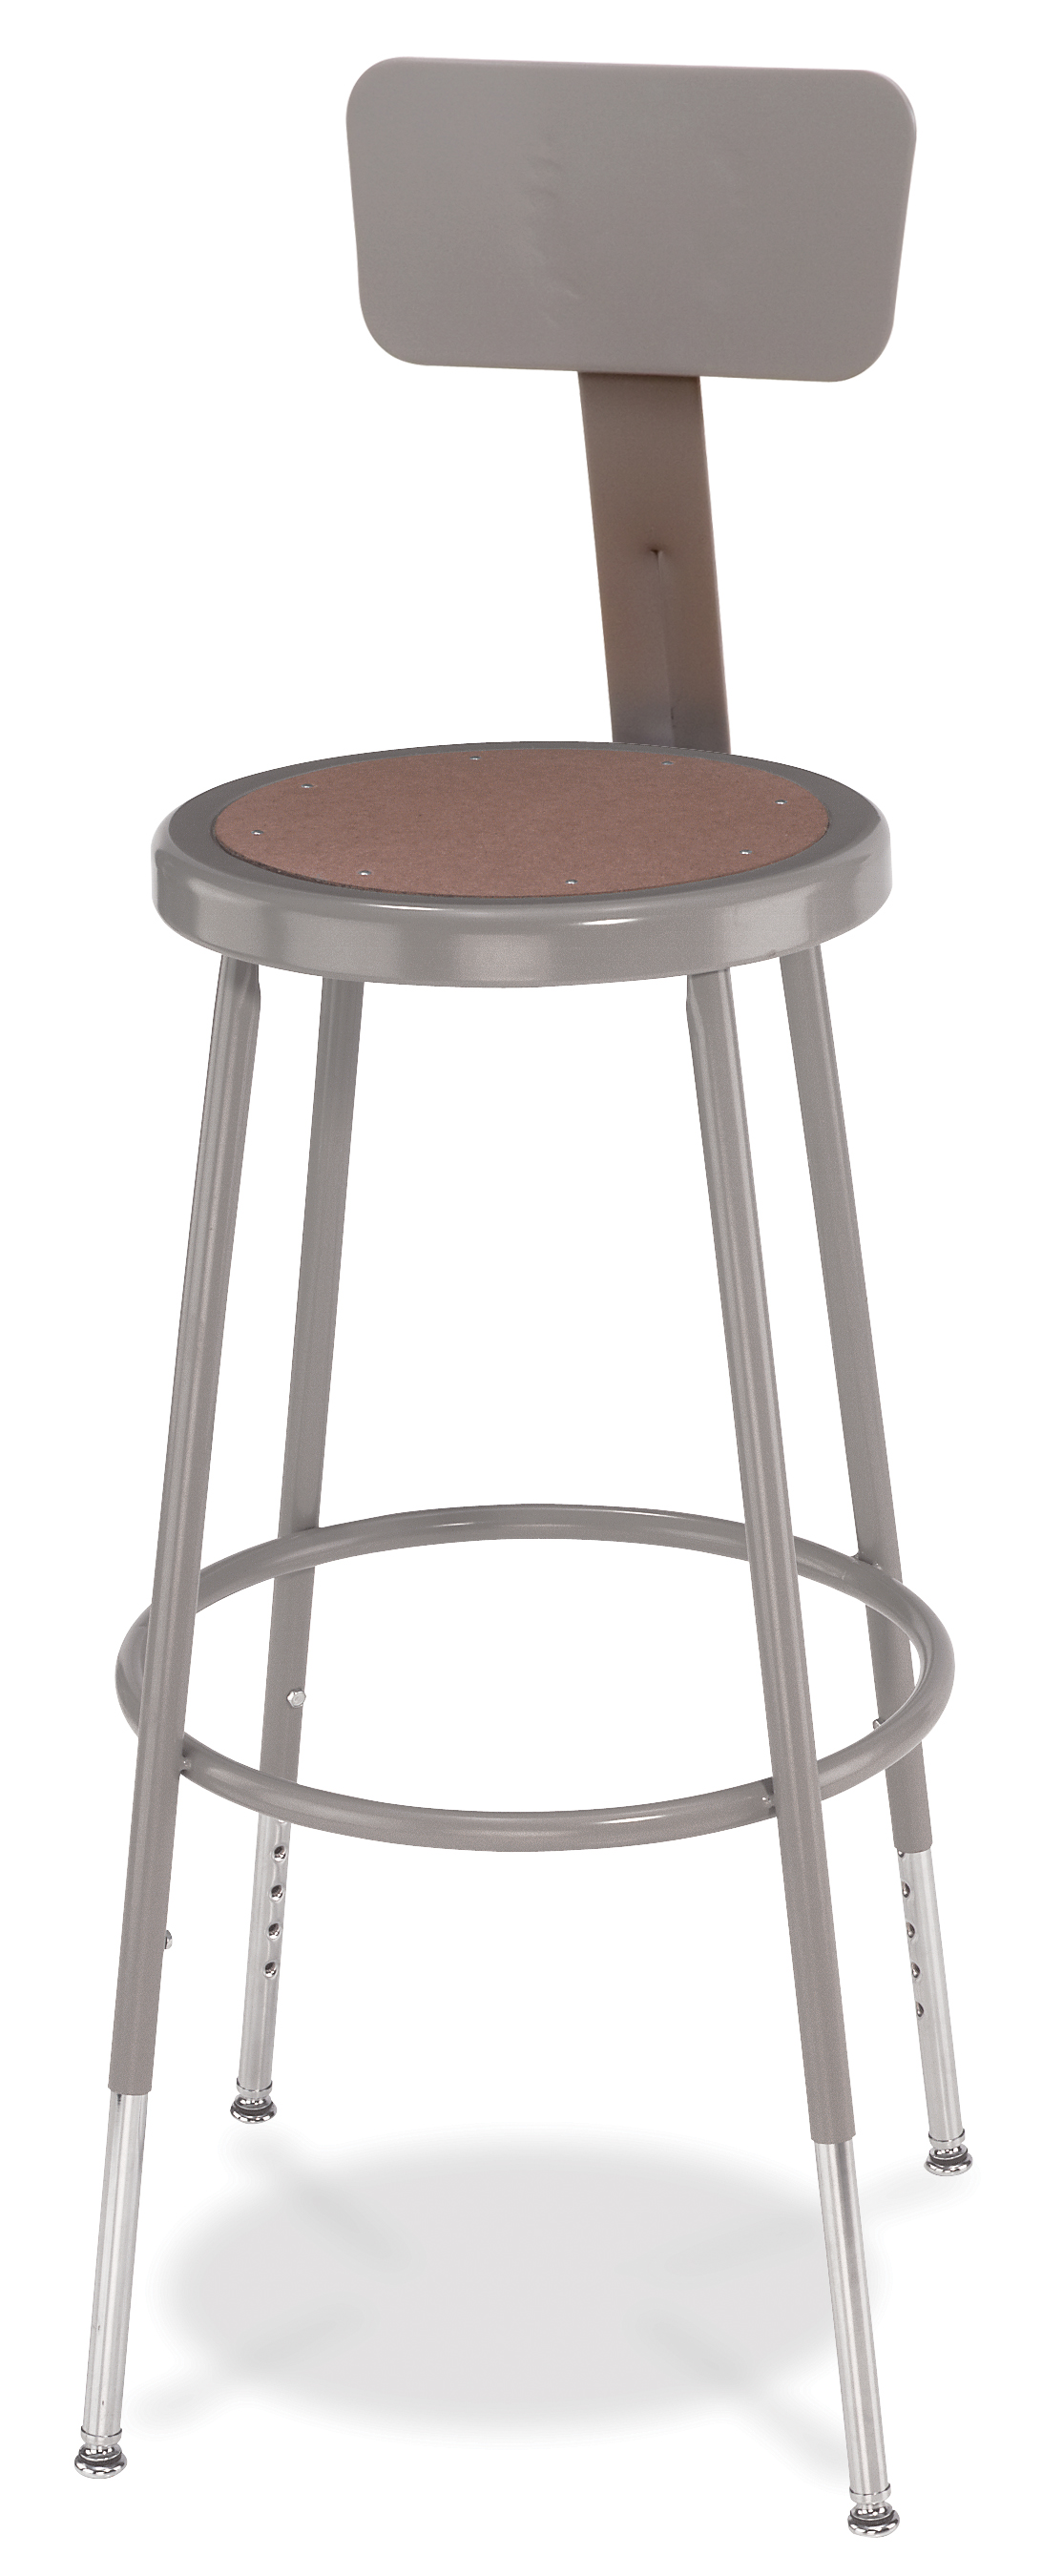 "4 PACK NPS Lab Stool with Backrest - 25""-33"" Adjustable Height"